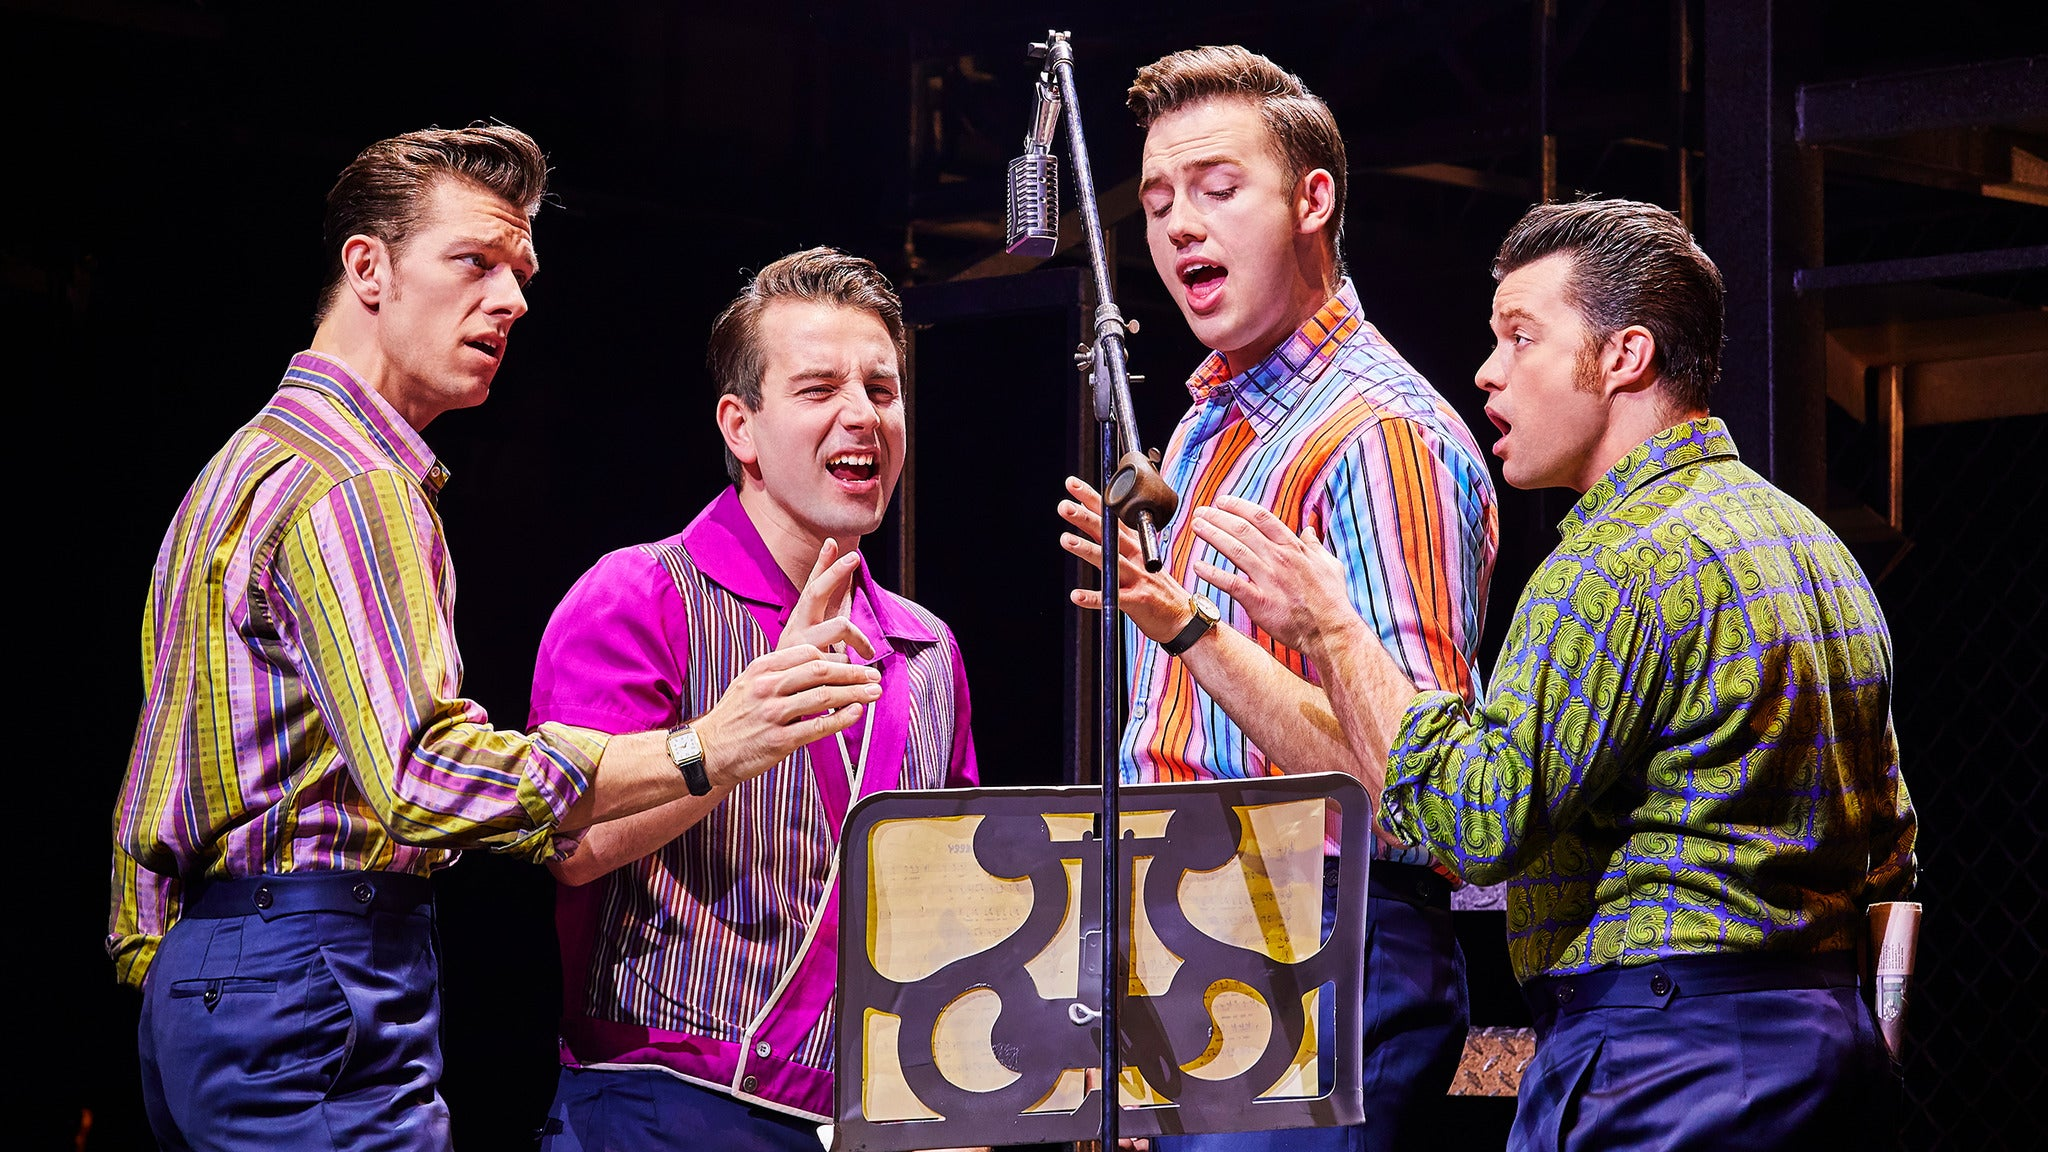 American Theatre Guild presents Jersey Boys - Thousand Oaks, CA 91362